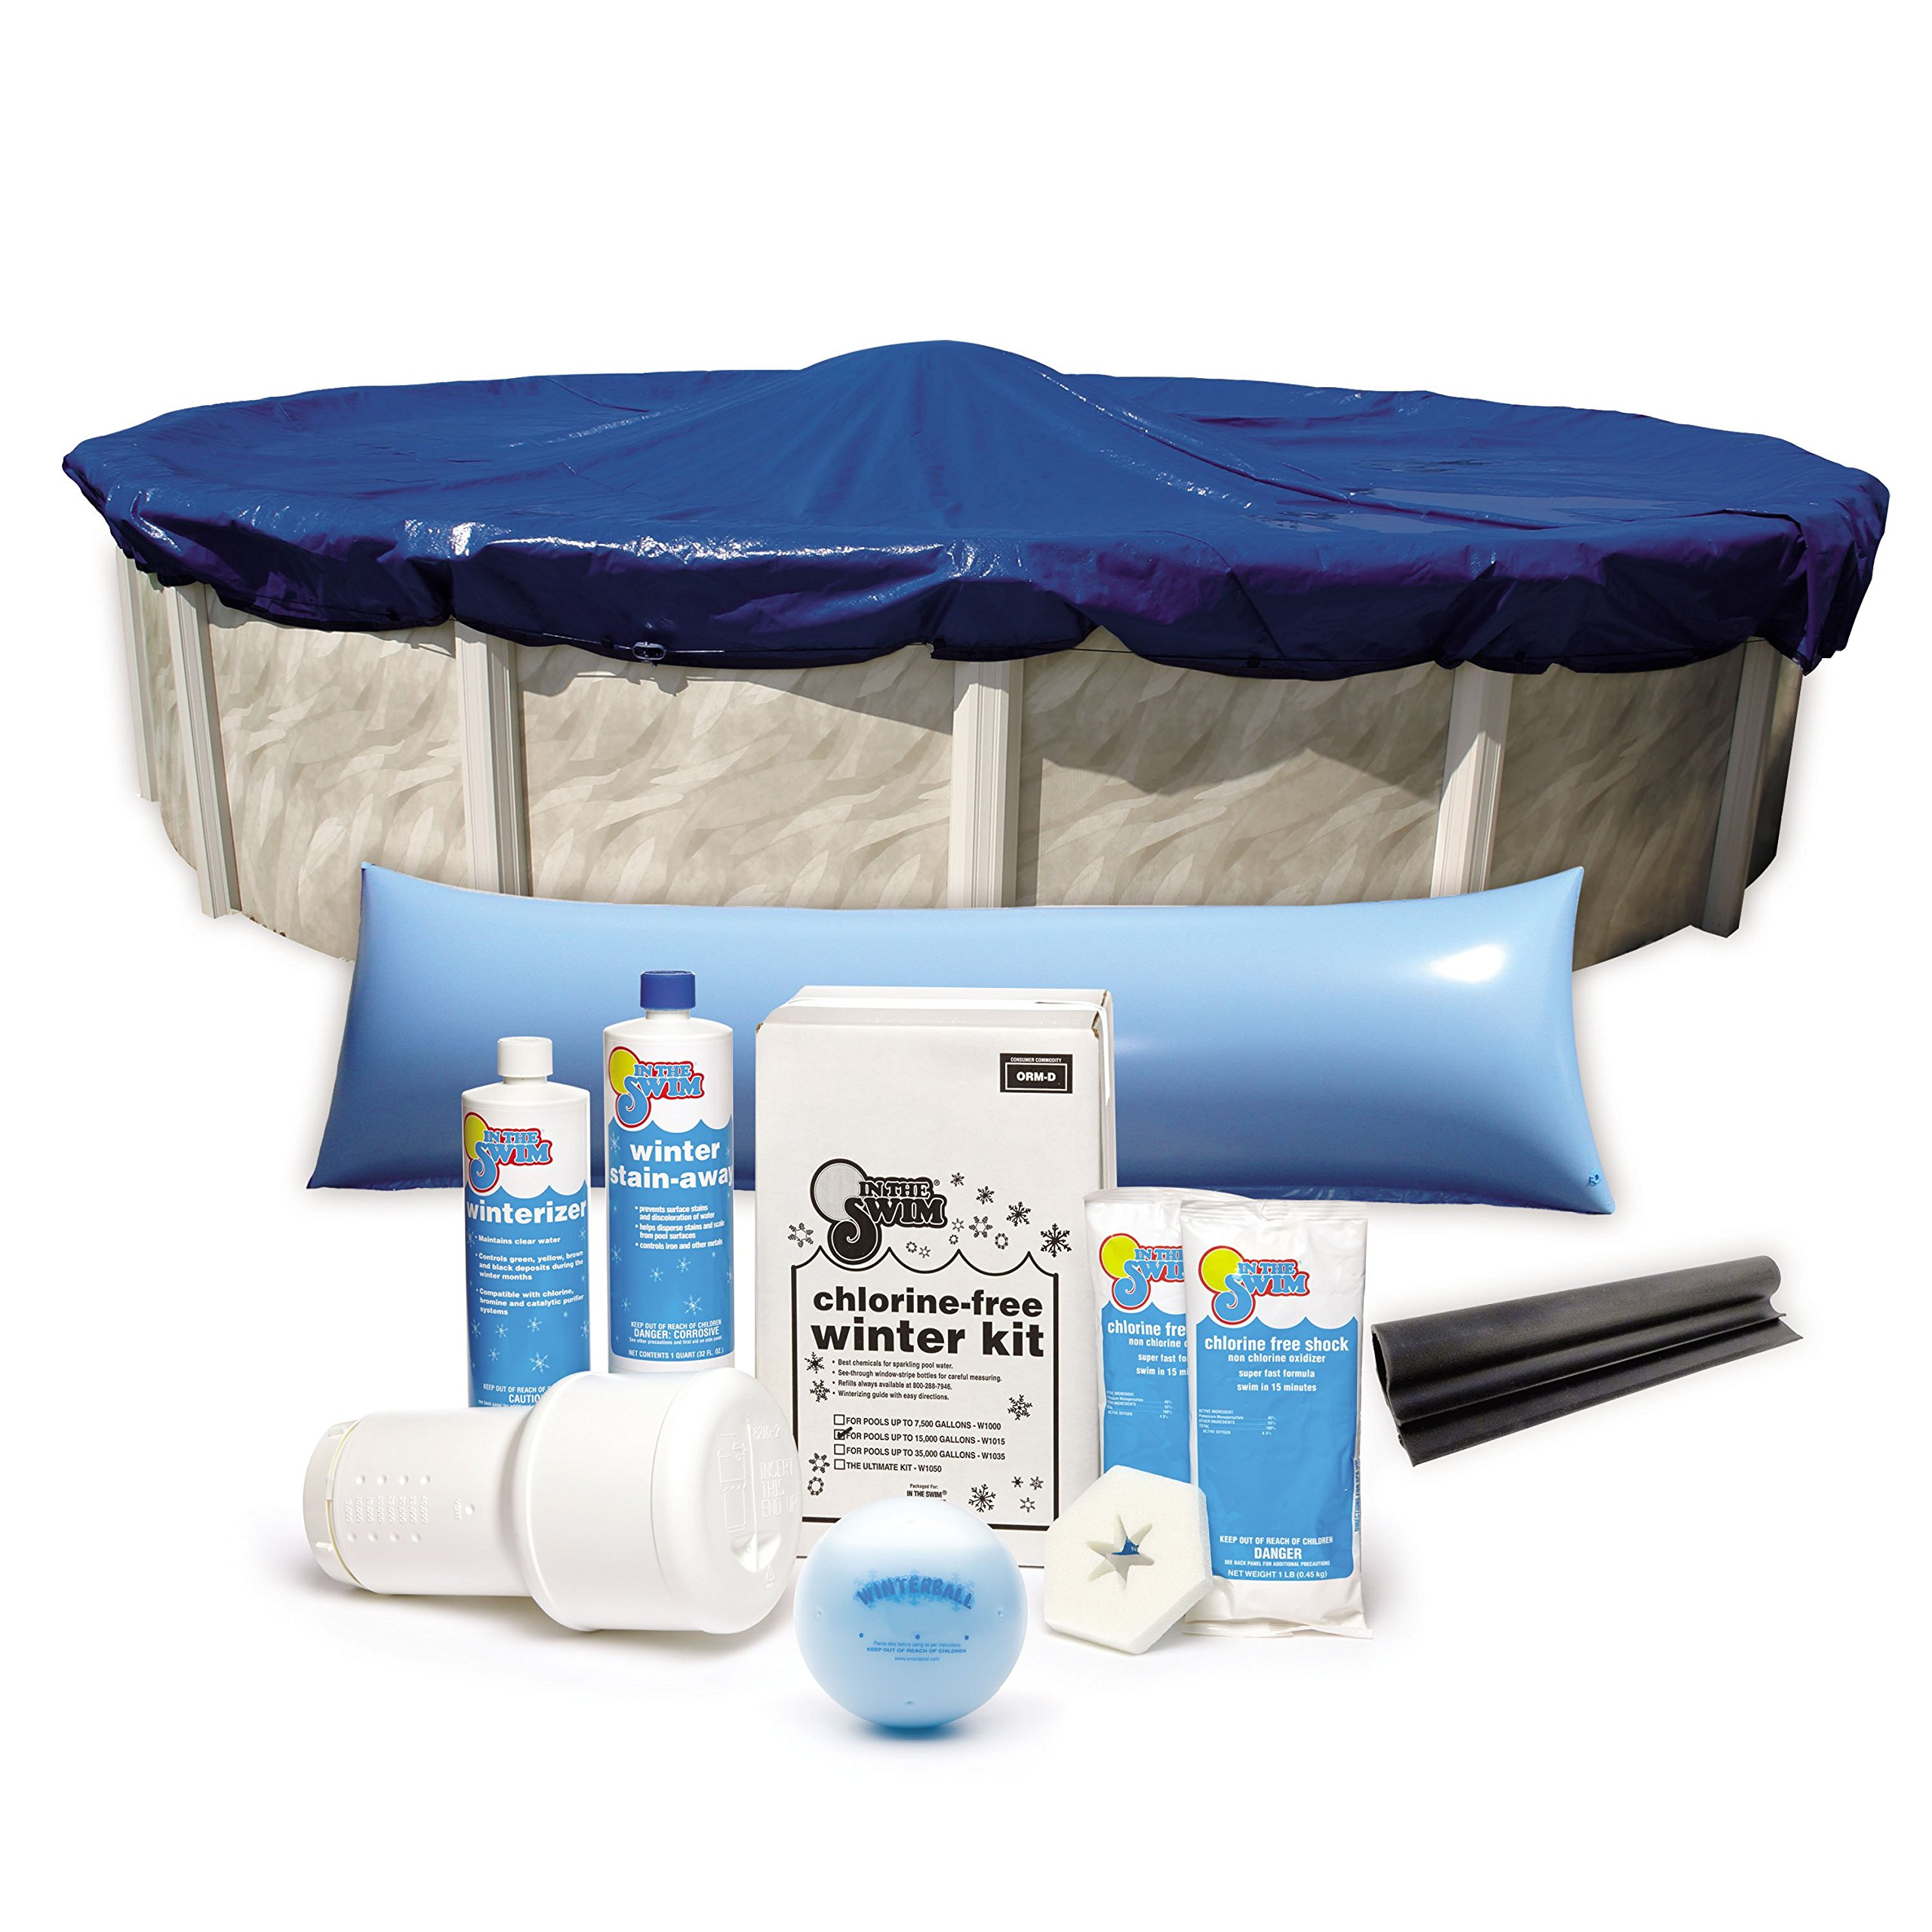 Bundle – 5 Items: 10-Year 18 ft. Round Pool Winter Cover with Cover Clips, Deluxe Pool Winterizing and Closing Chemical Kit, Winter Ball and 4 x 8 ft. Air Pillow by In The Swim